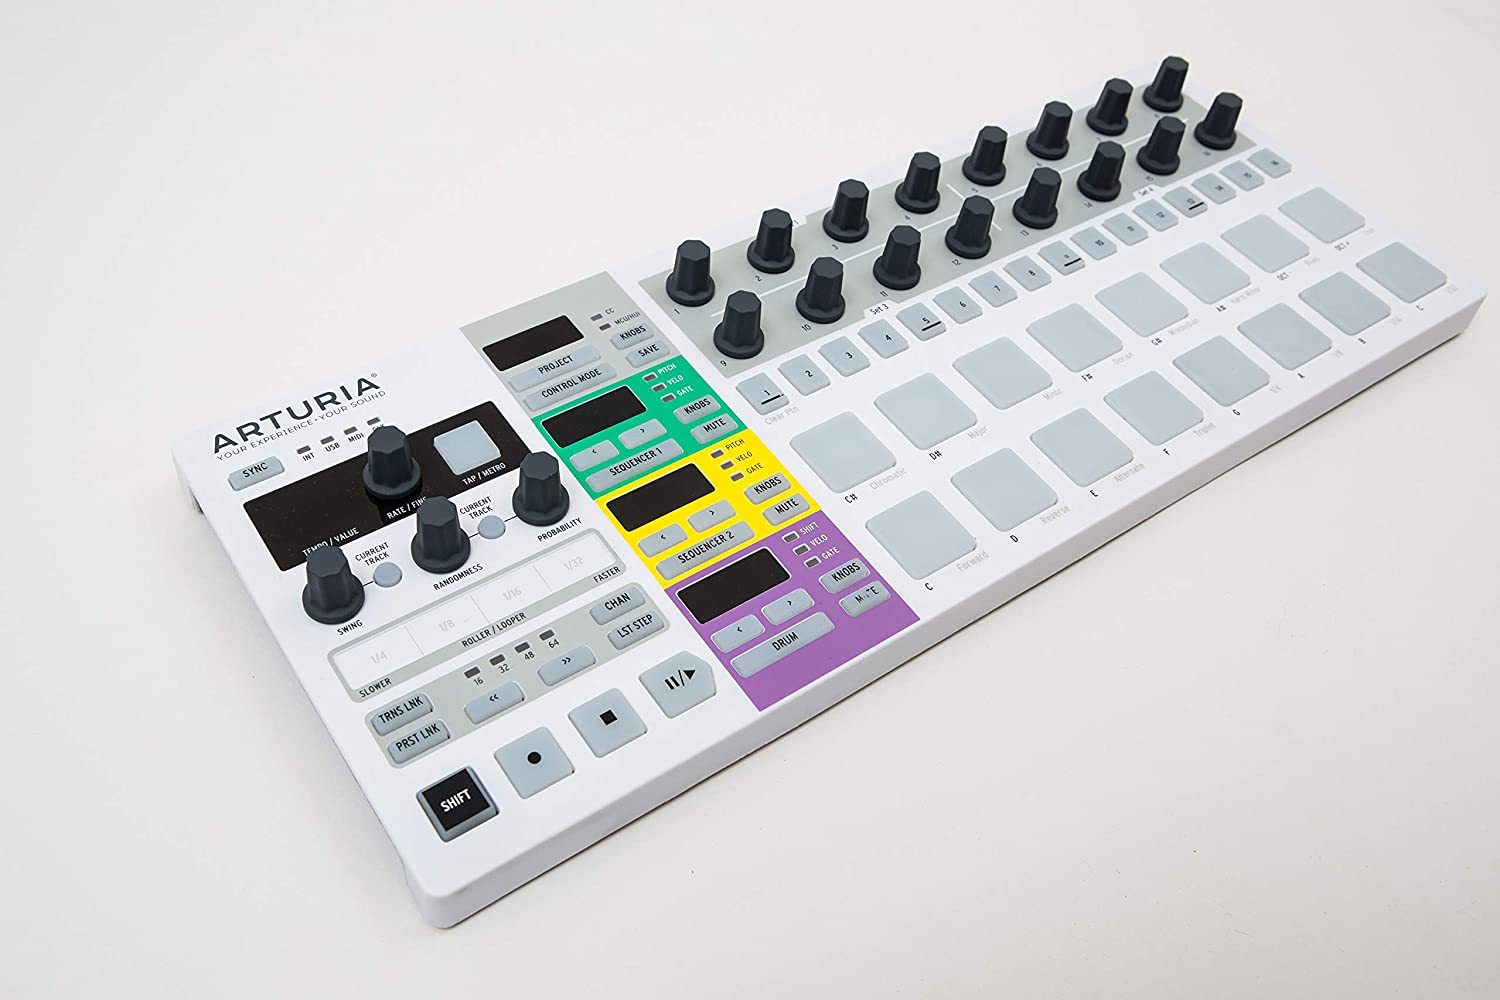 Arturia Beatstep USB MIDI Pad Rotary Controller /& Sequencer